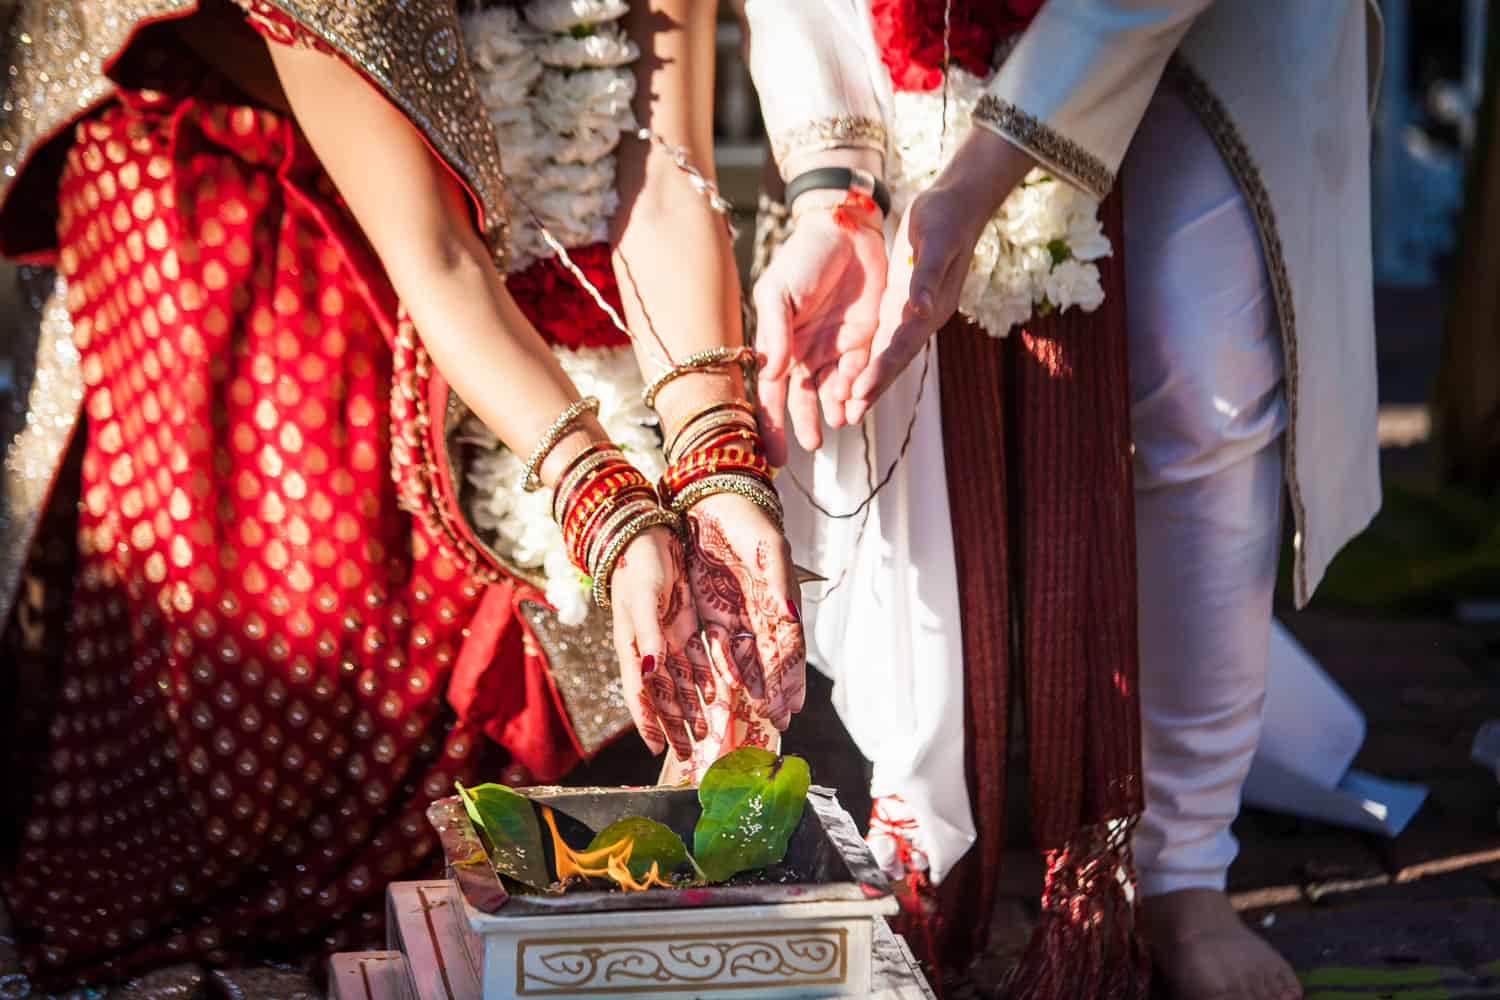 Close up on bride and groom's hands during traditional Hindu wedding ceremony